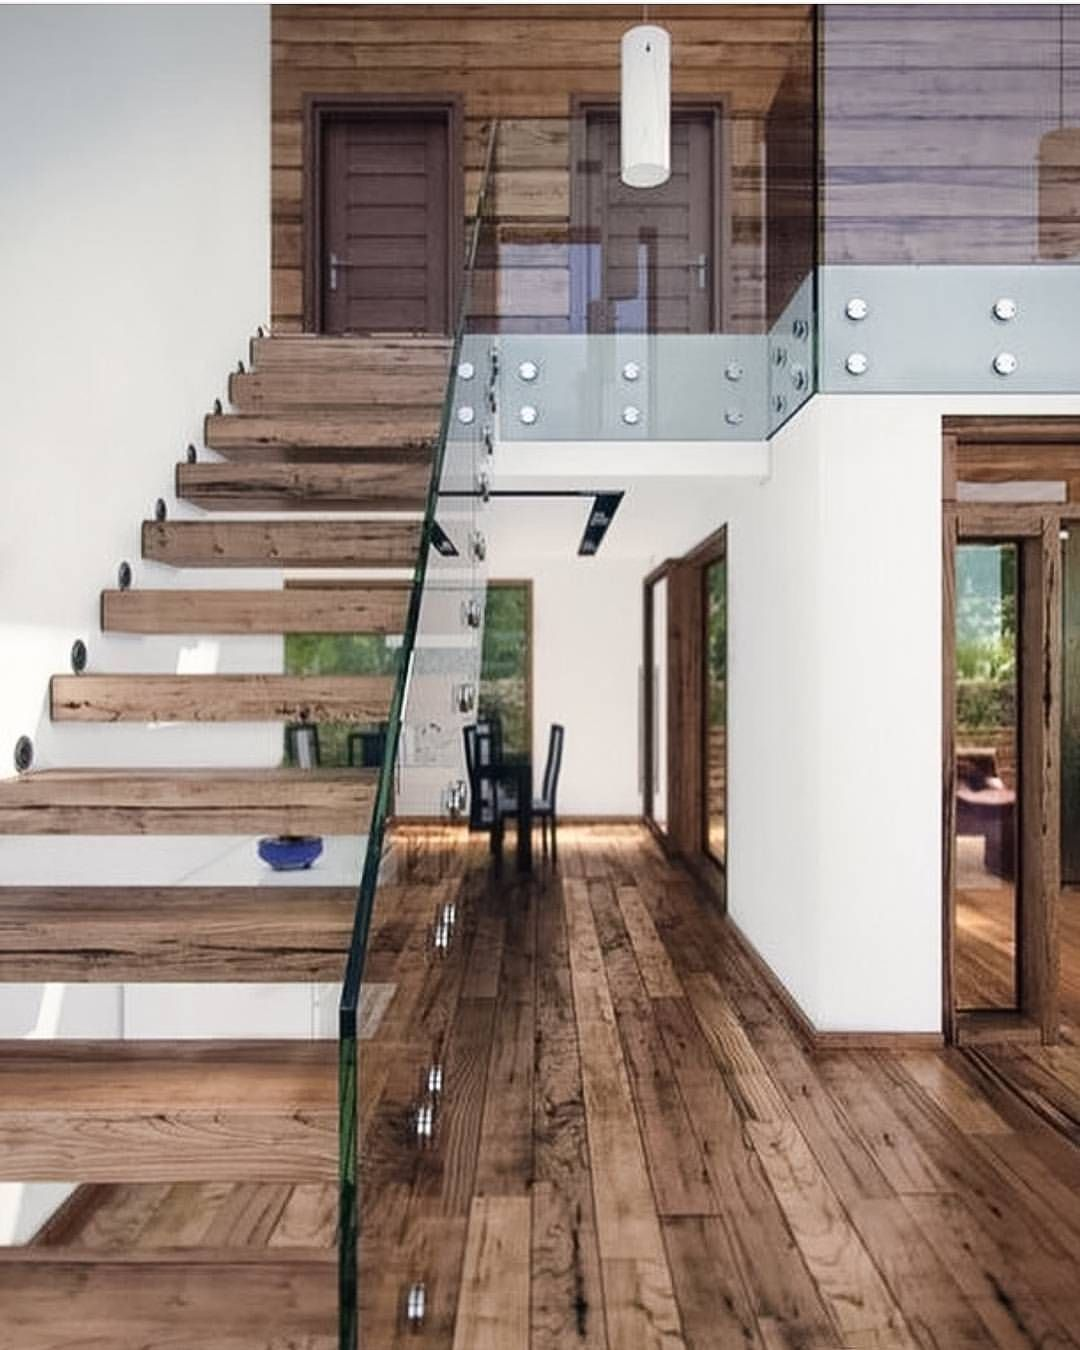 HENDRIX U0026 HARLOW   Official On Instagram: U201cA Modern Space With Timber And  Glass Against A Clean White Wall. Whatu0027s Not To Love!